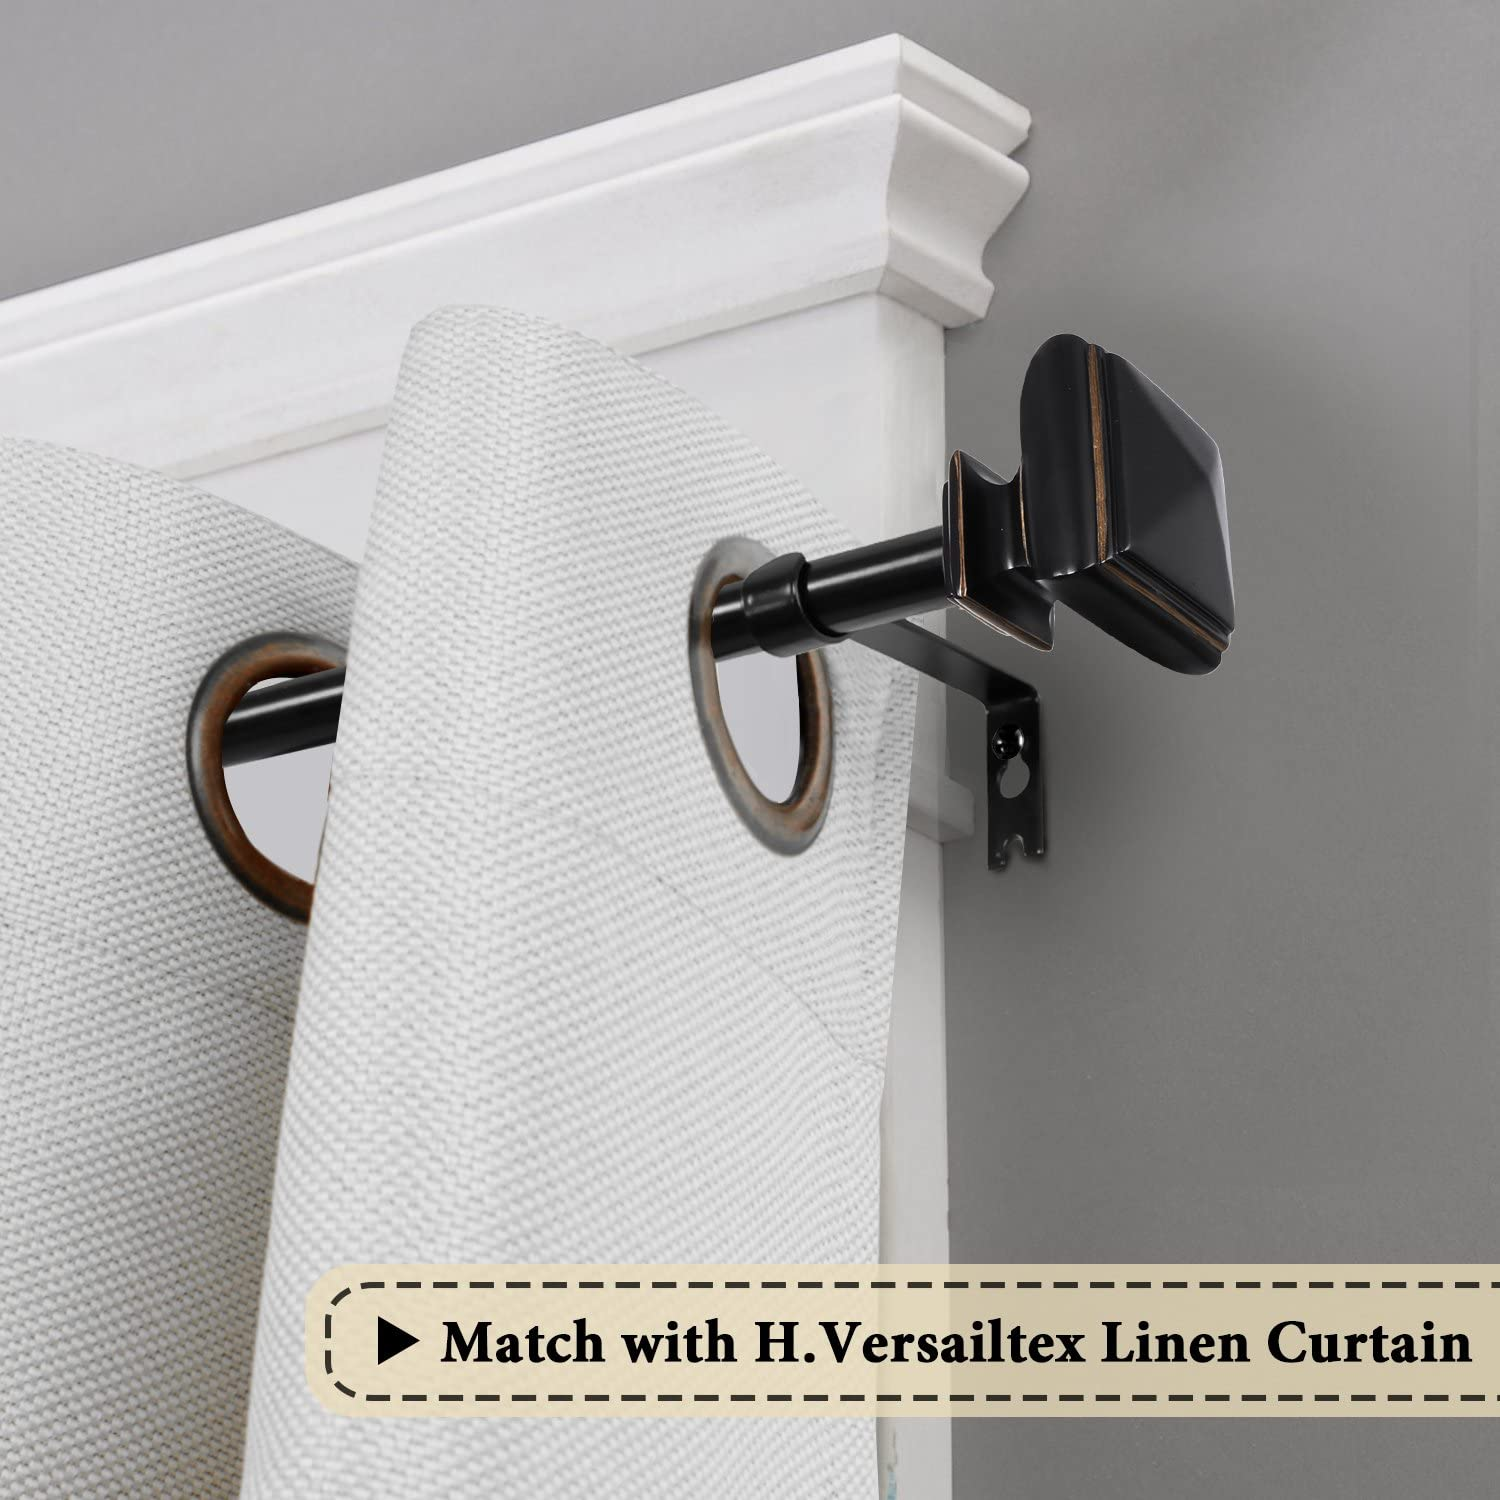 H.VERSAILTEX Classic West Square Window Treatment Sets Arts and Craft 3//4-Inch Diameter Decorative Single Curtain Rod Adjusts from 28 to 48 Inches,Nickel